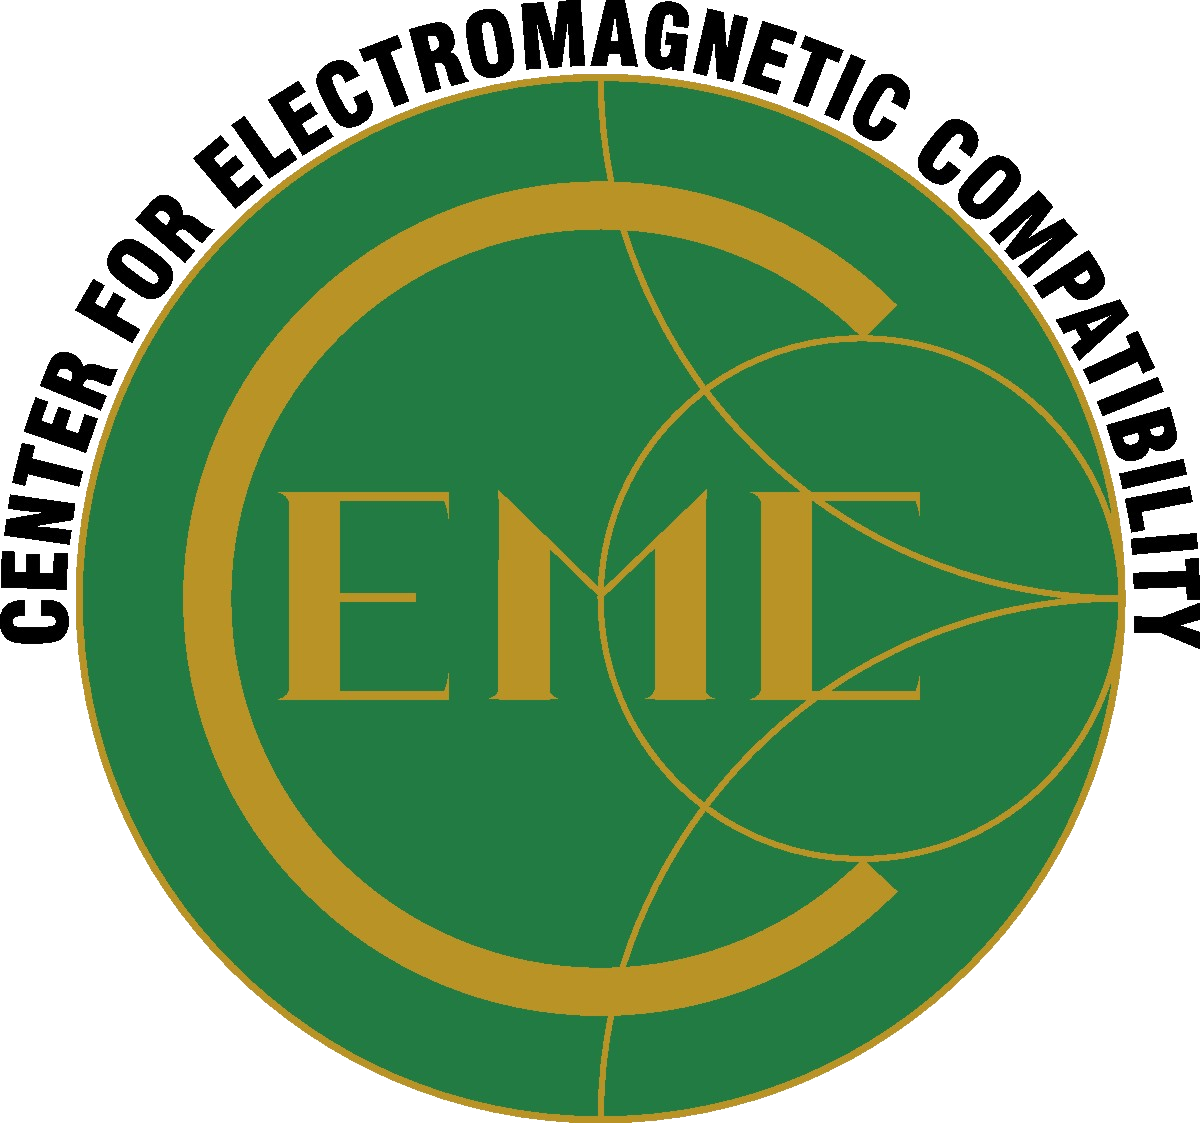 Center for Electro Magnetic Compatibilty